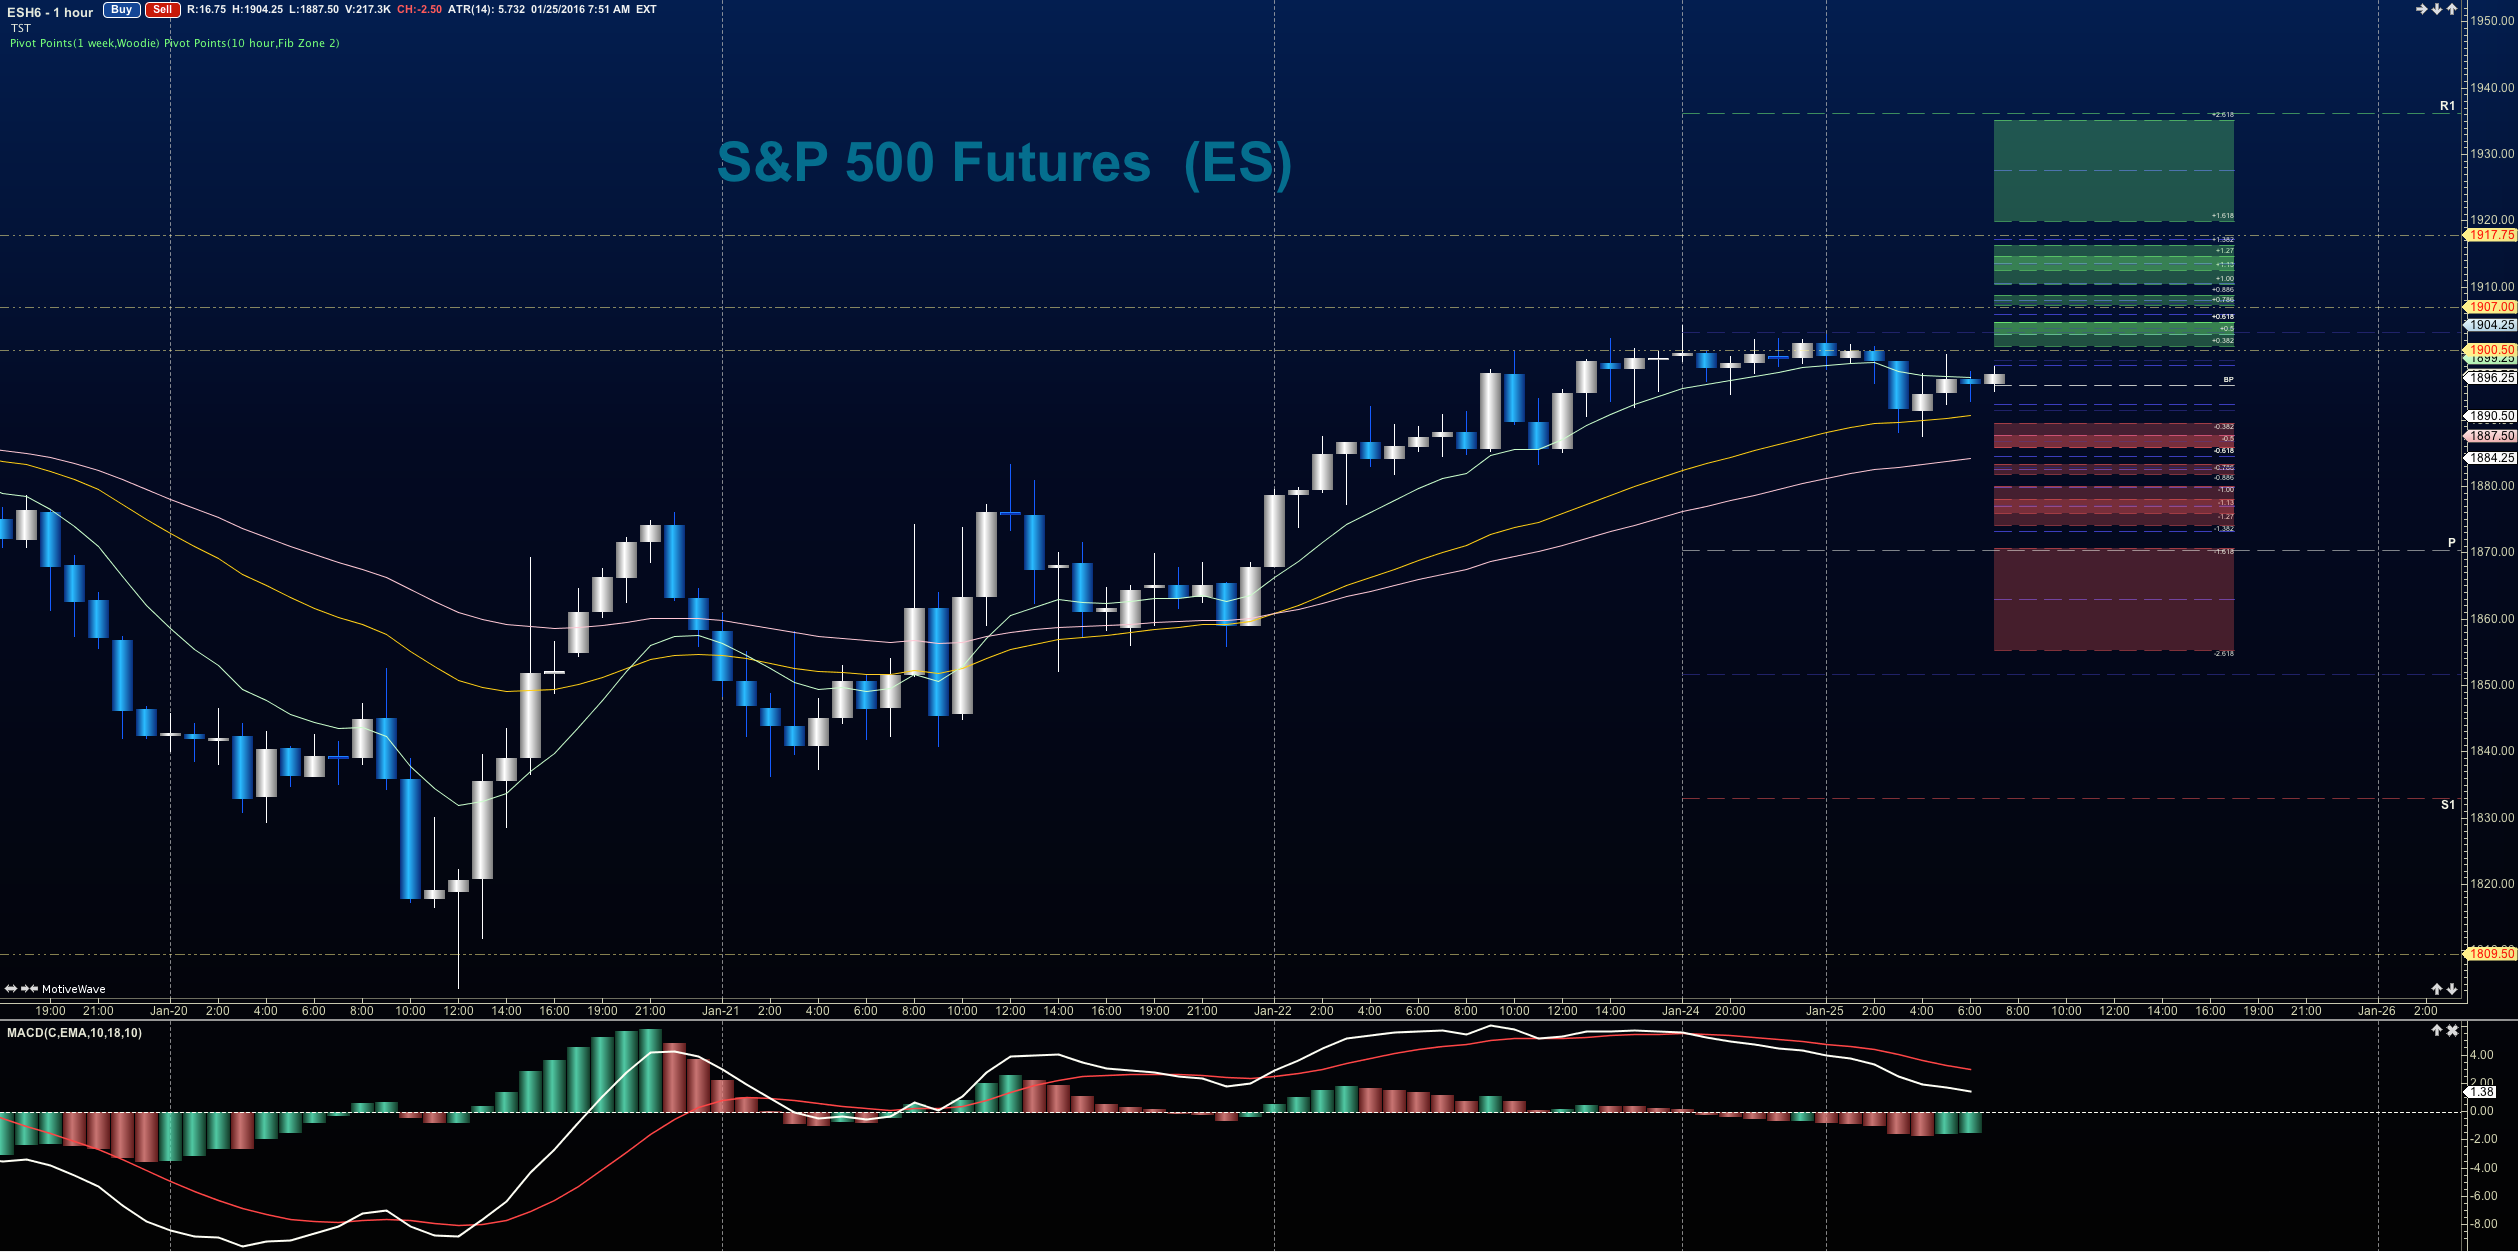 S p 500 futures retreat lower from key price resistance